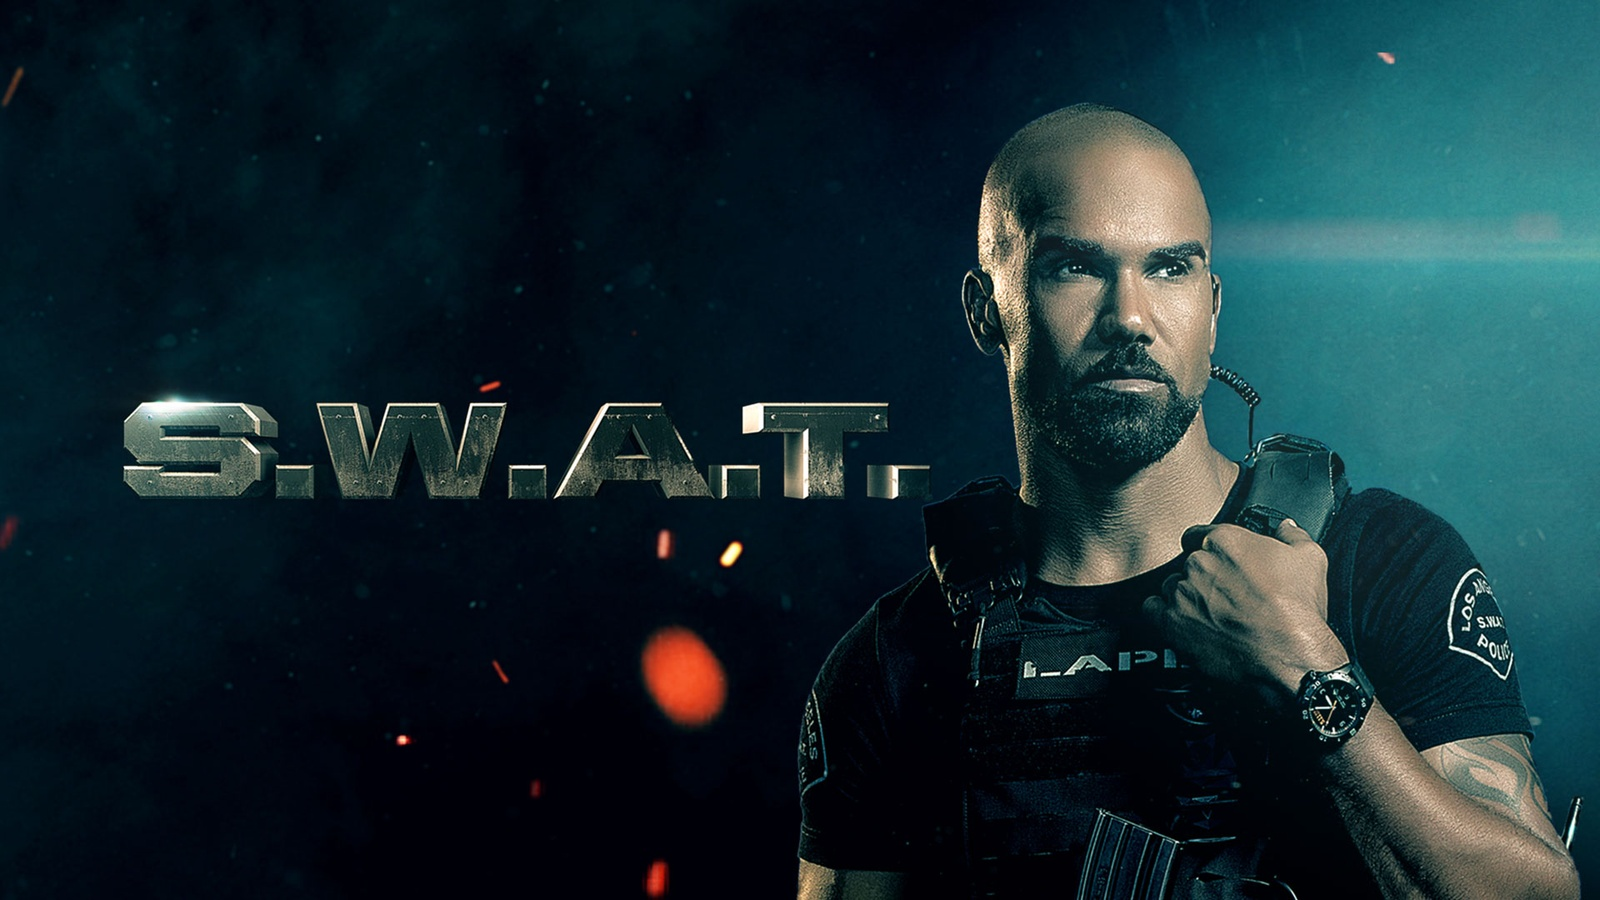 Спецназ / S.W.A.T. background